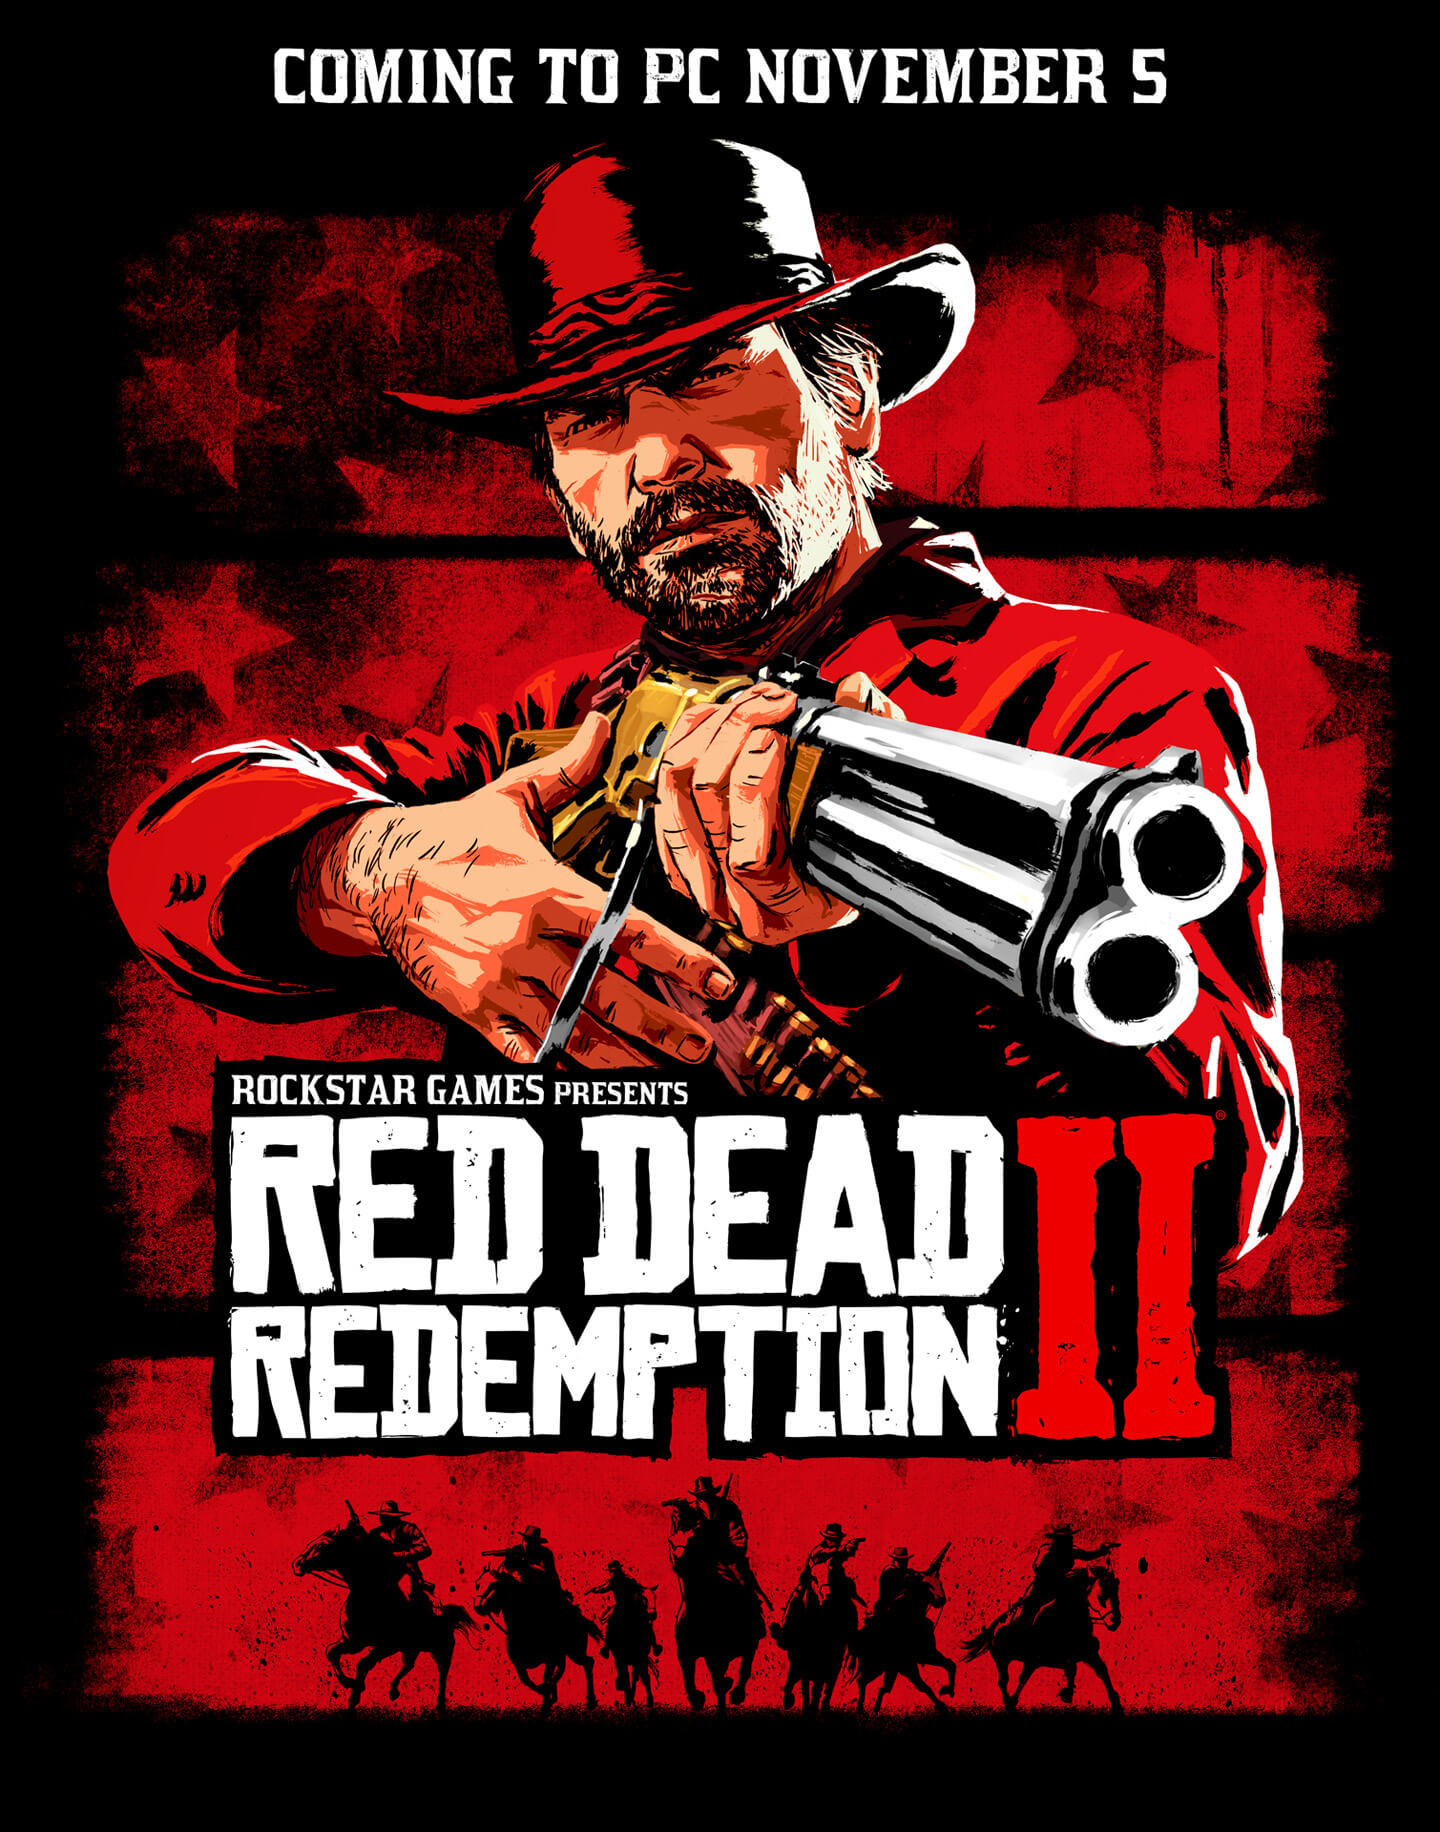 https://img5.downloadha.com/hosein/files/2019/11/Red-Dead-Redemption-2-preorder-pc-cover-large.jpg